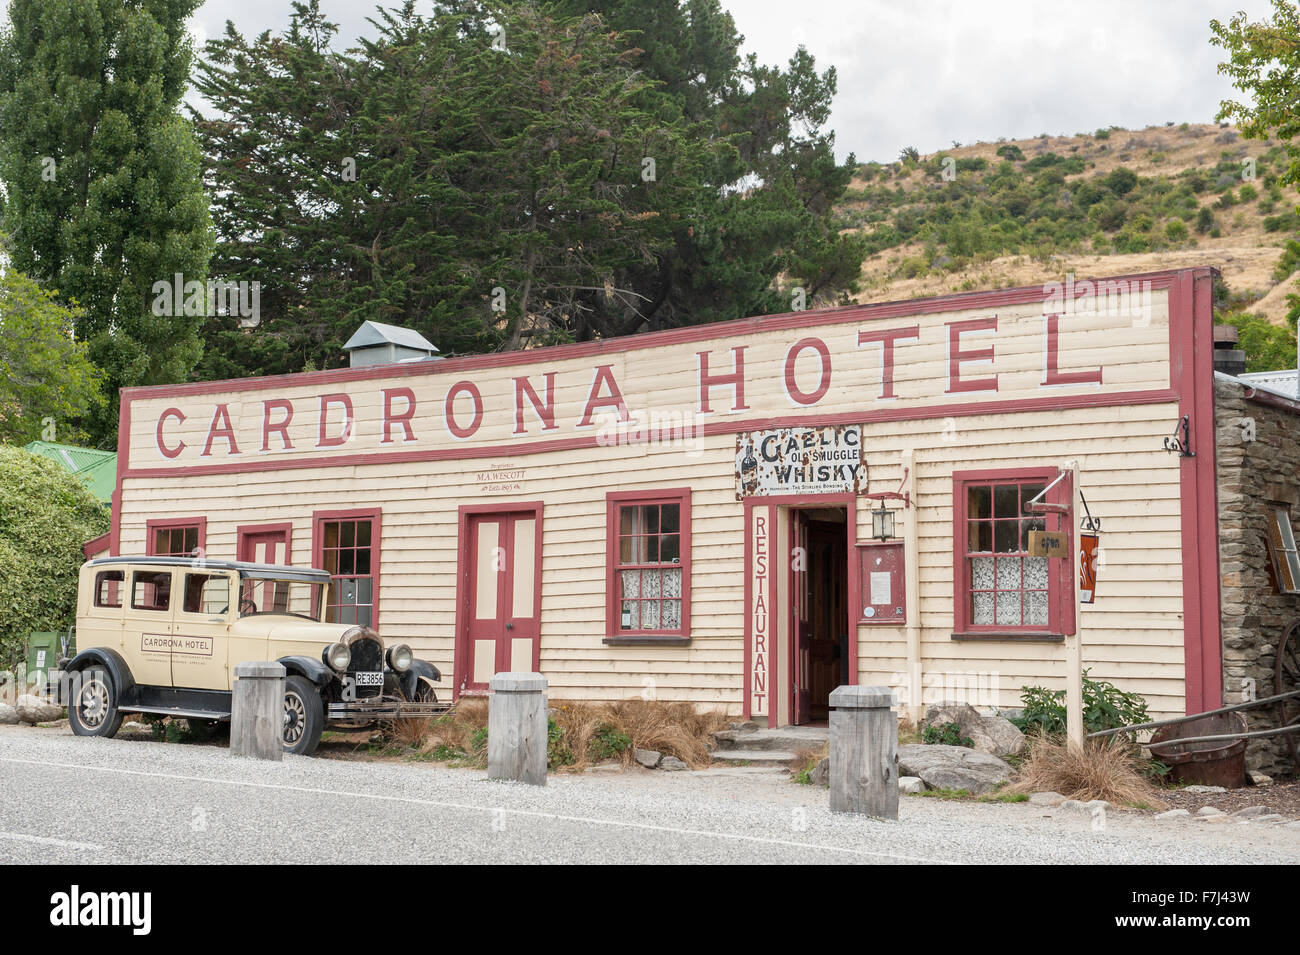 Vintage Cardrona Hotel in scenic Cardrona, Central Otago, South Island, New Zealand. - Stock Image